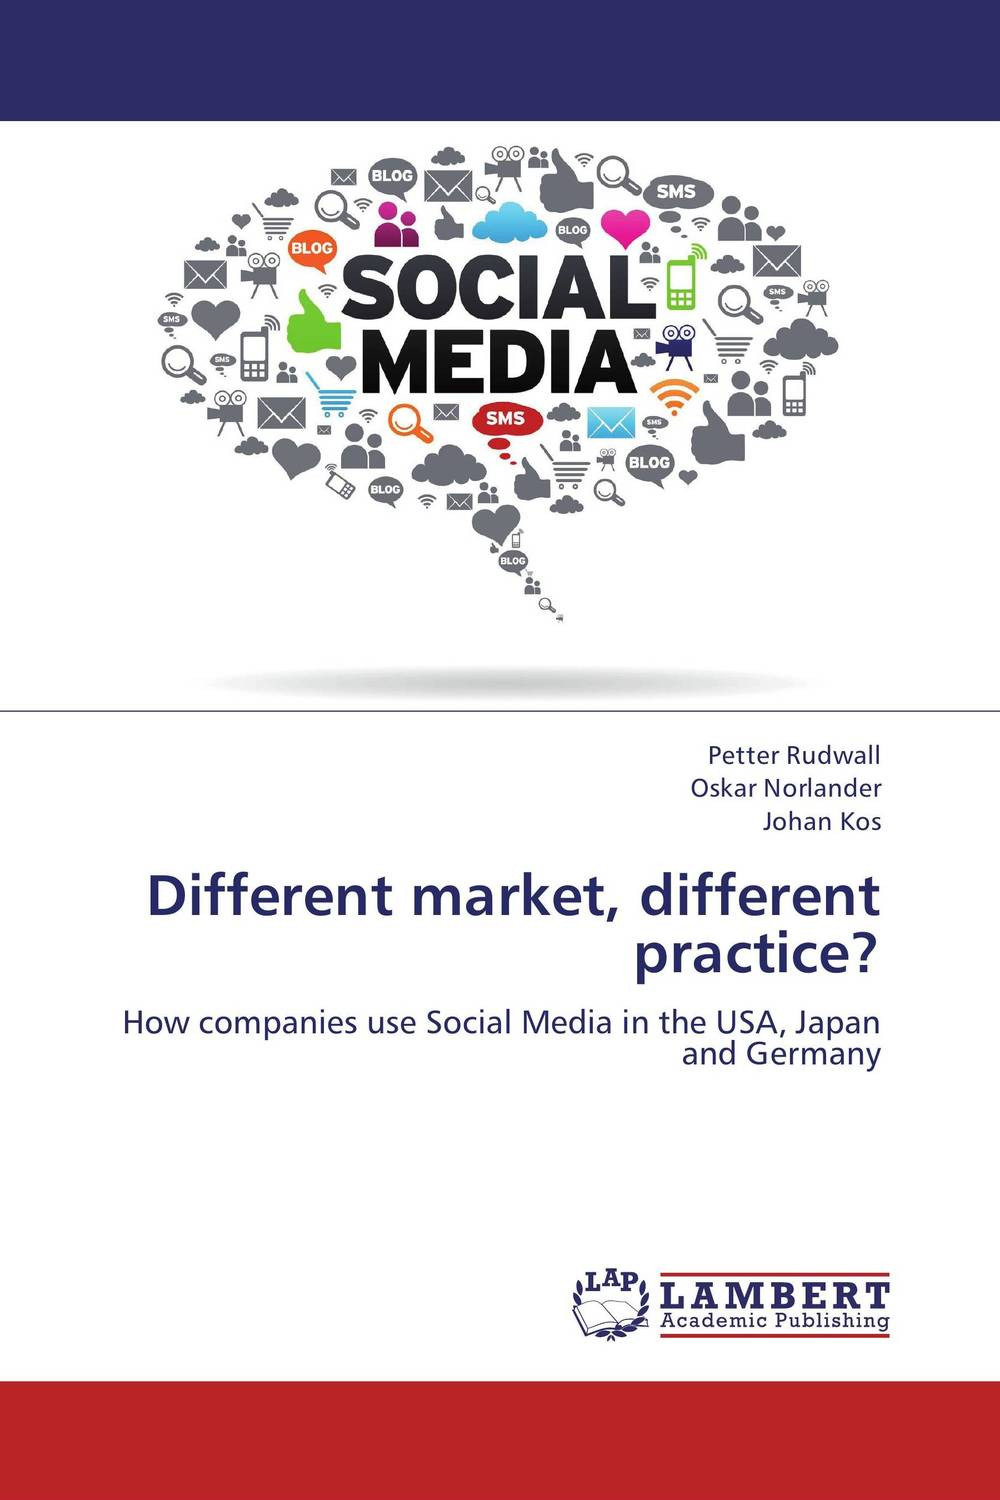 Different market, different practice? social media usage among emirati digital natives